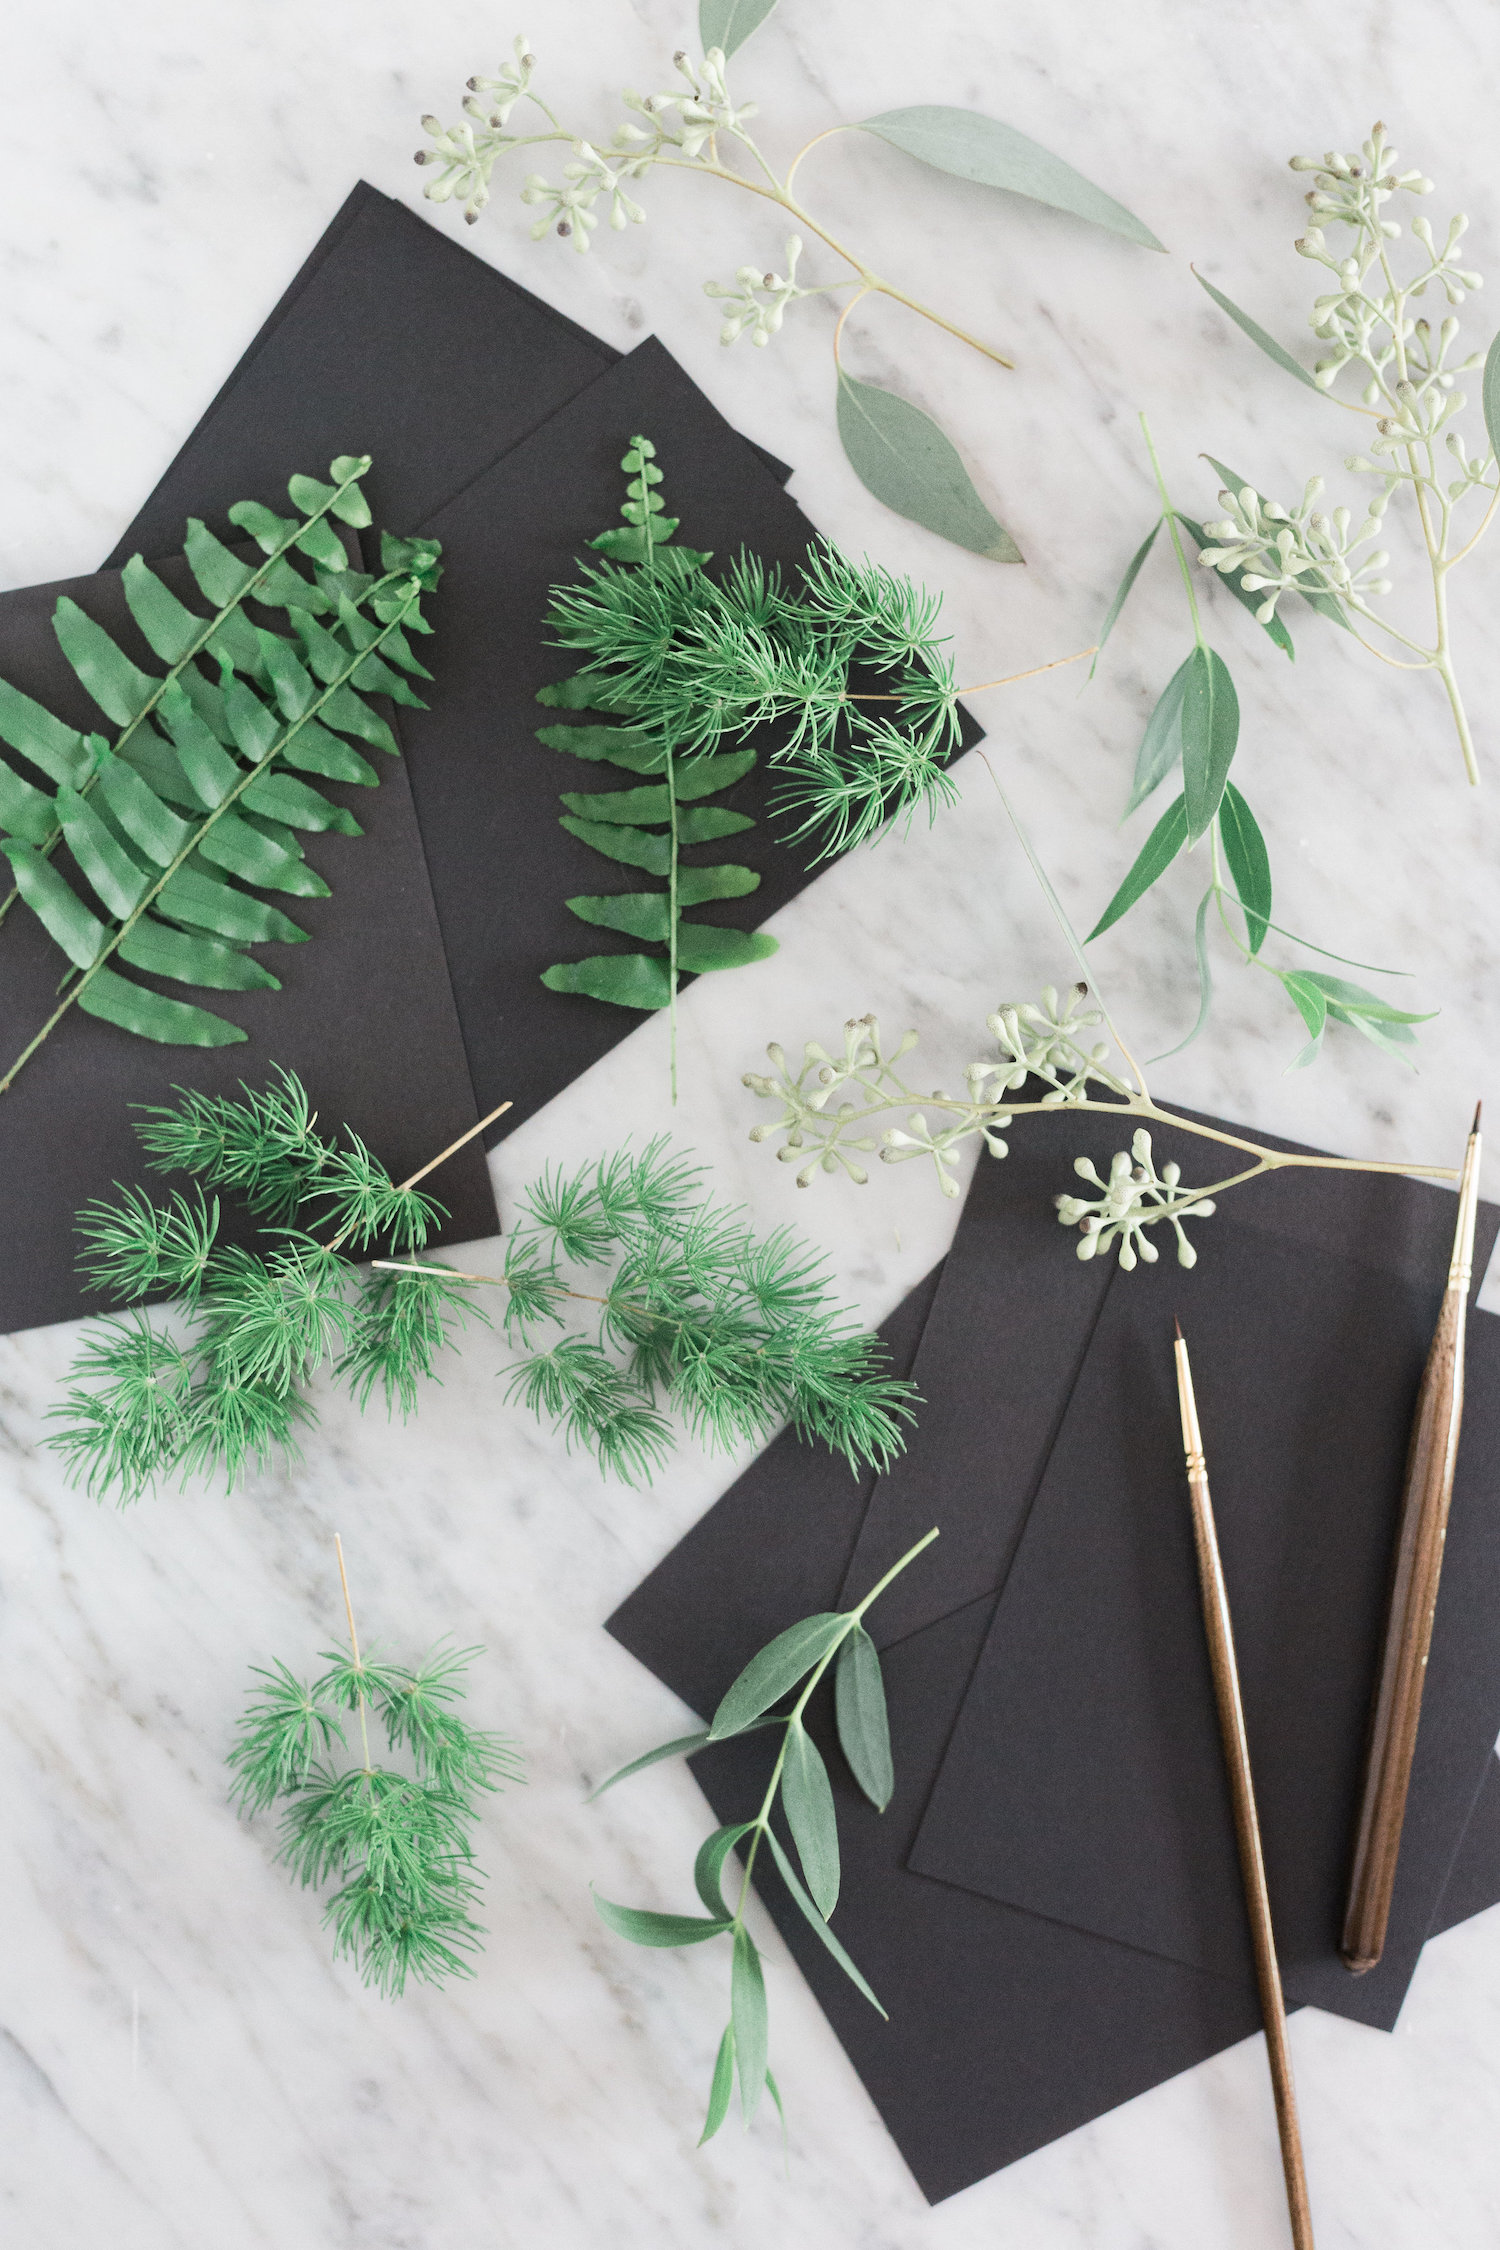 Supplies for DIY living escort or place cards | A Fabulous Fete